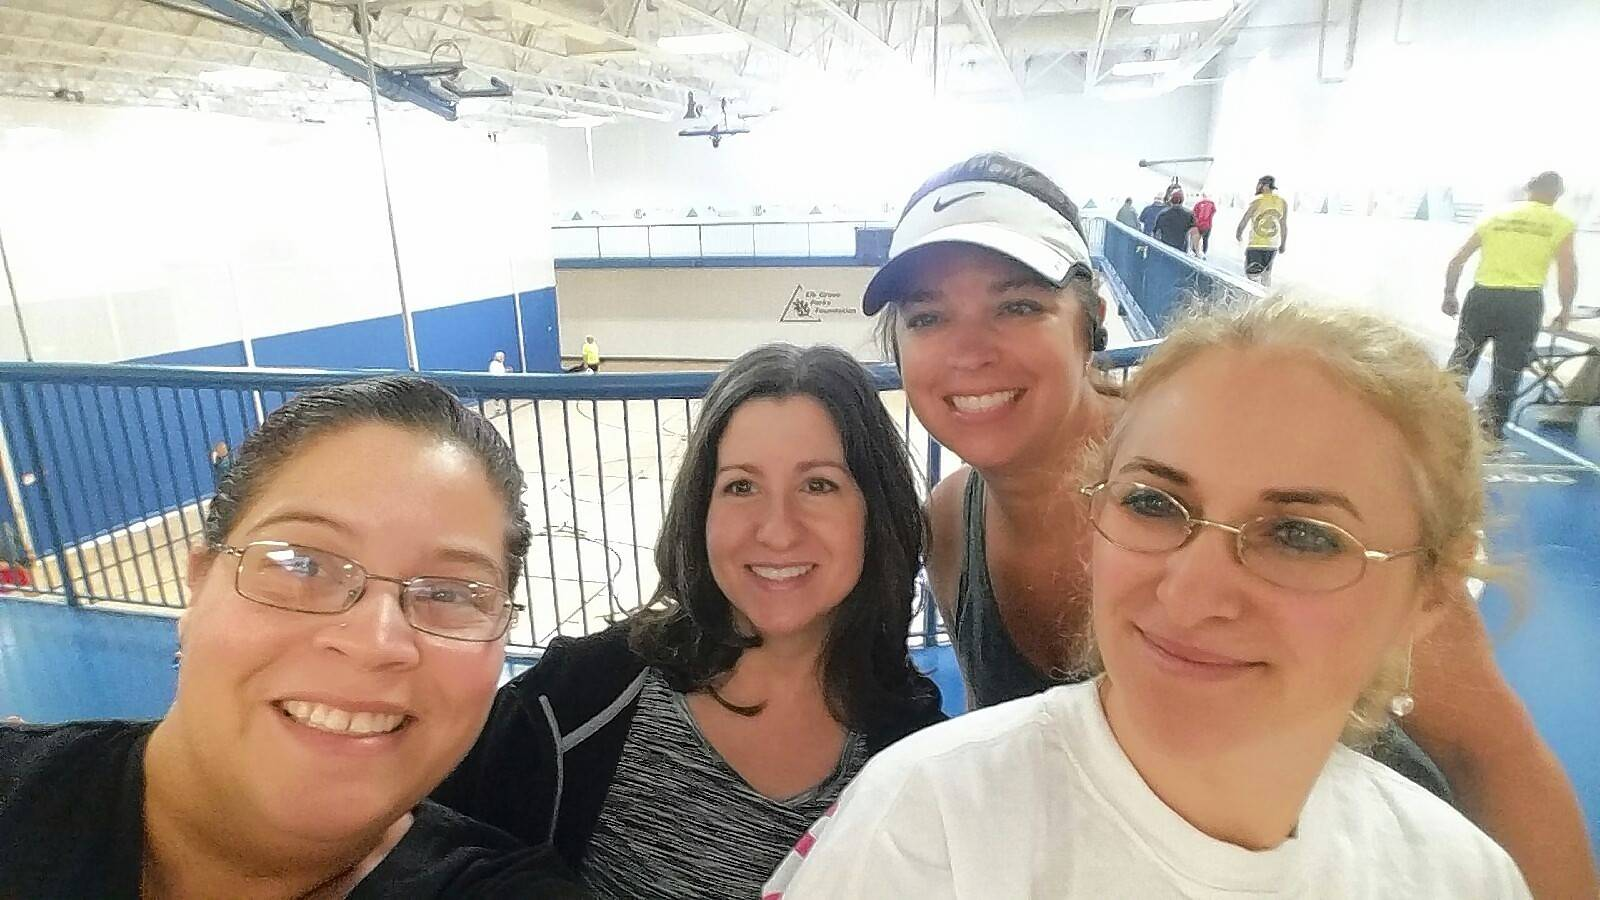 Team WOW from Wings Program, Inc. has fun at the Indoor 5K. From left to right: Deyanira Suarez, Judy Flint, Denise Urban, and Bruna Srb.